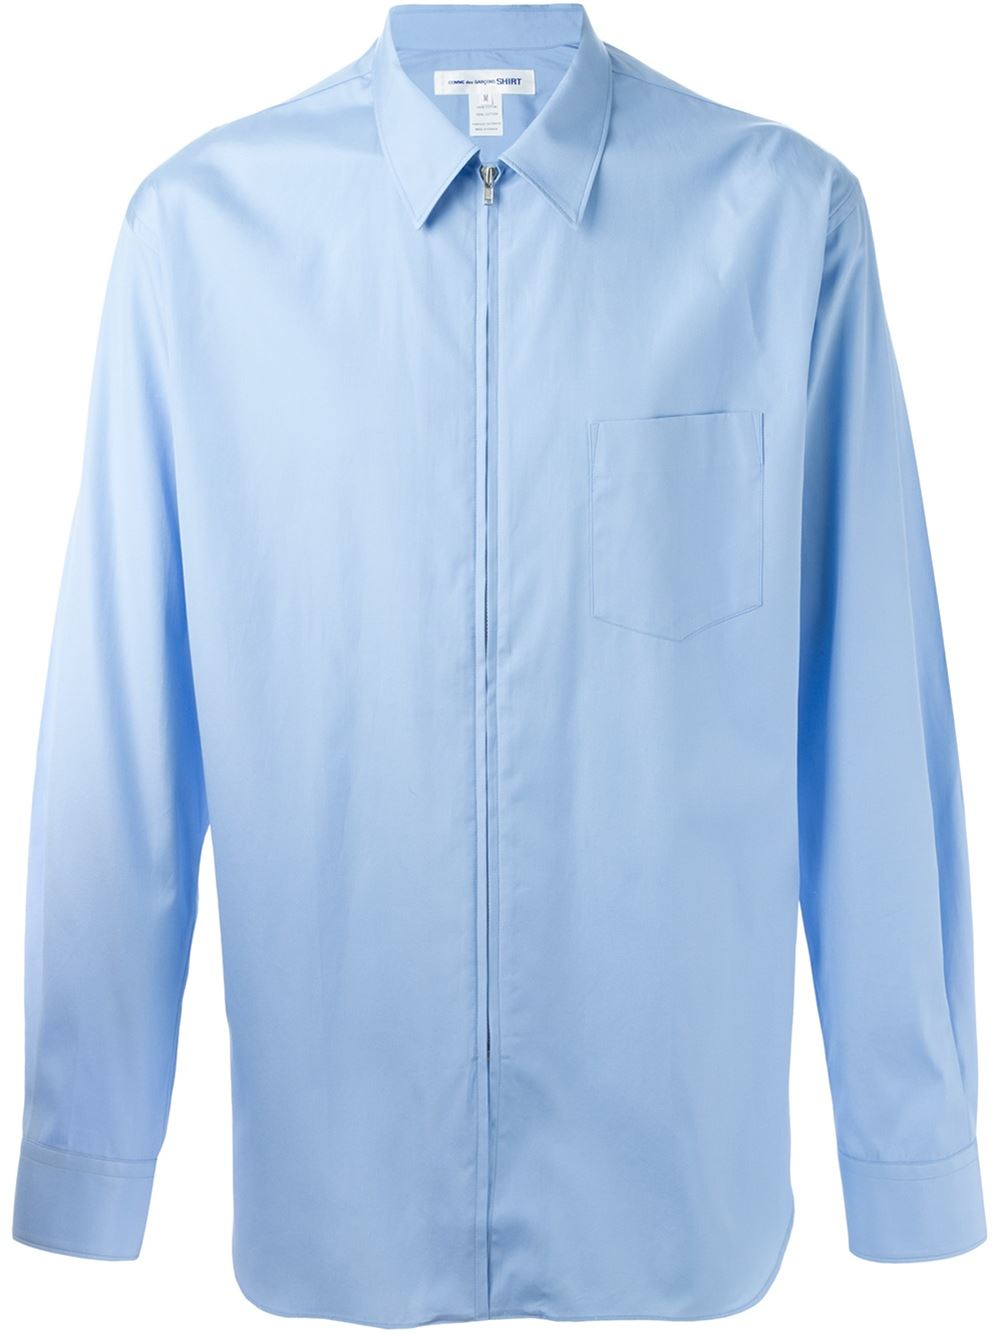 comme des gar ons zip shirt in blue for men lyst. Black Bedroom Furniture Sets. Home Design Ideas